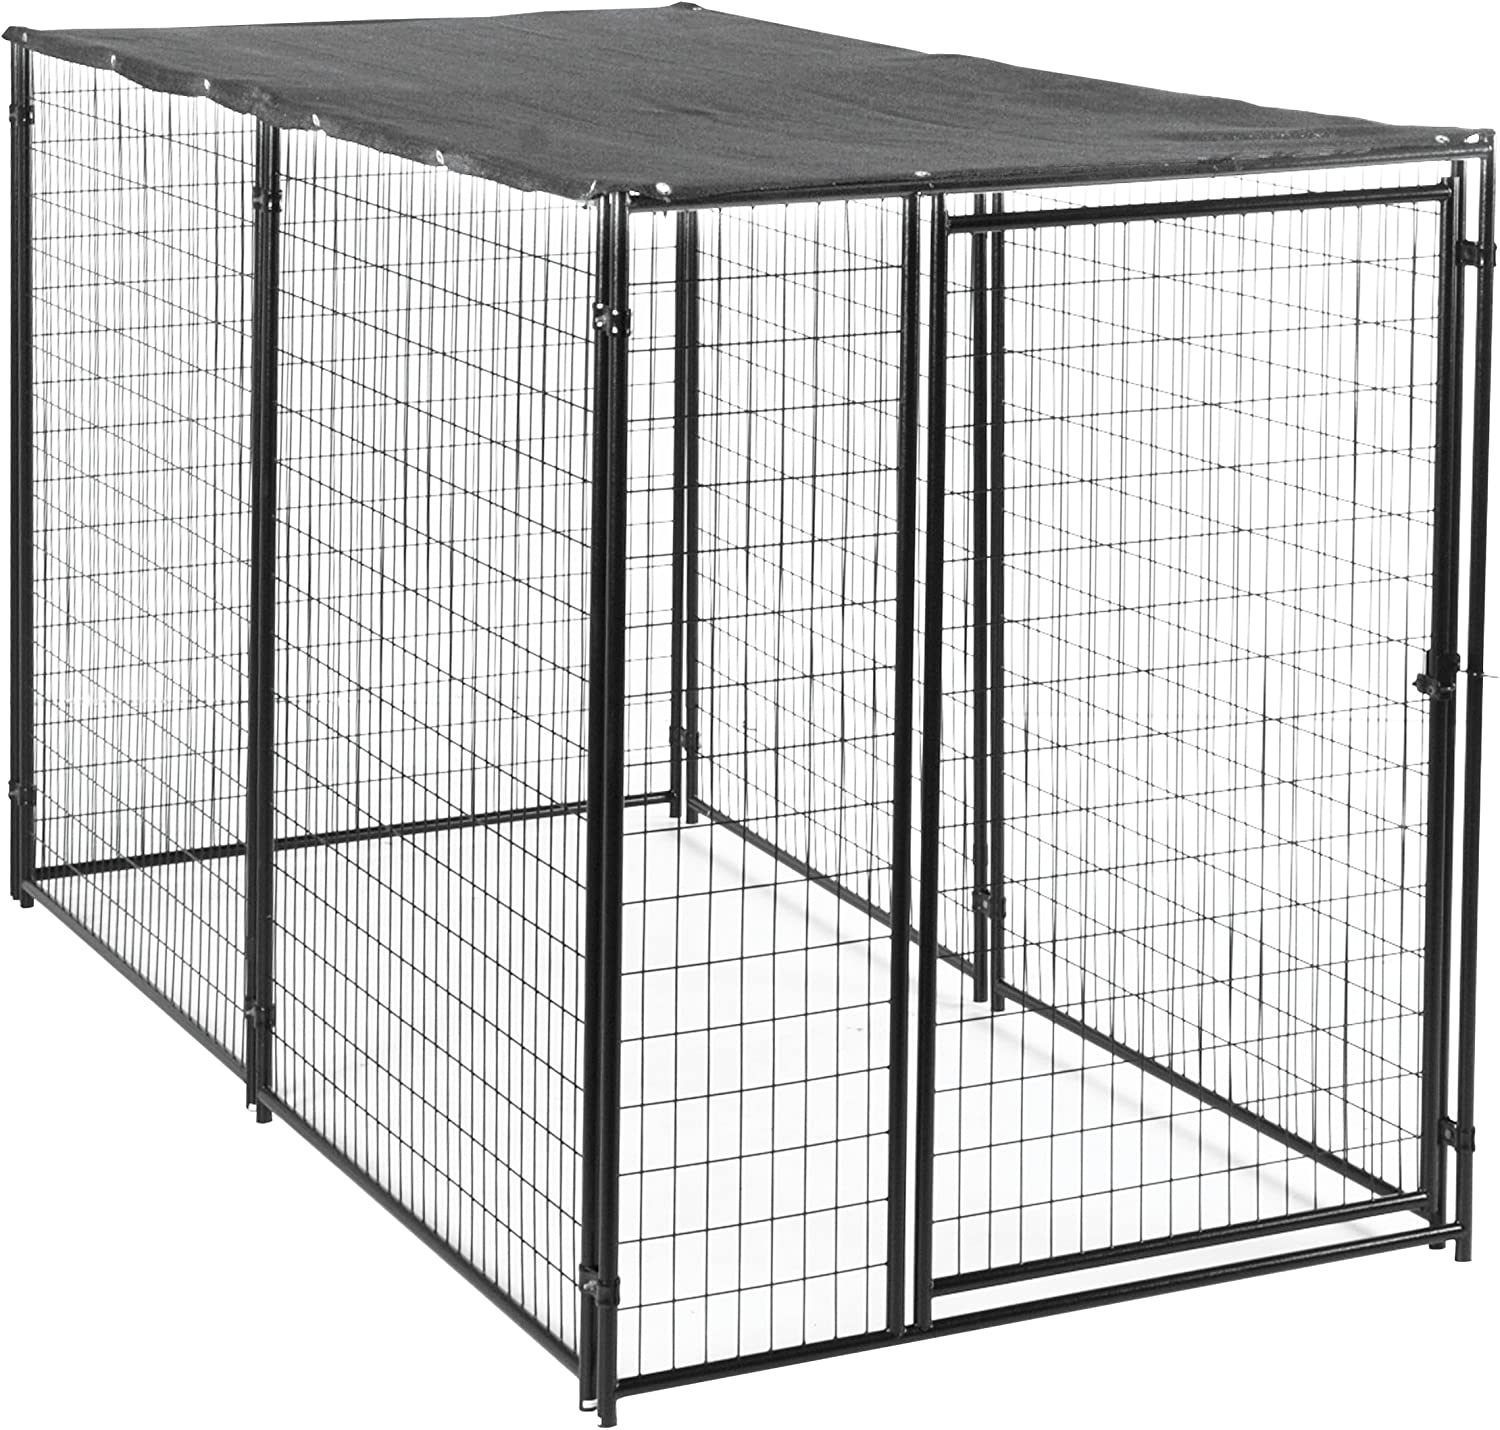 Lucky Dog Dog Kennel with Waterproof Cover Modular Box Kennel – This Welded Animal Enclosure is Perfect for Medium to Large Dogs and Animals and is Designed with Their Safety and Comfort in Mind